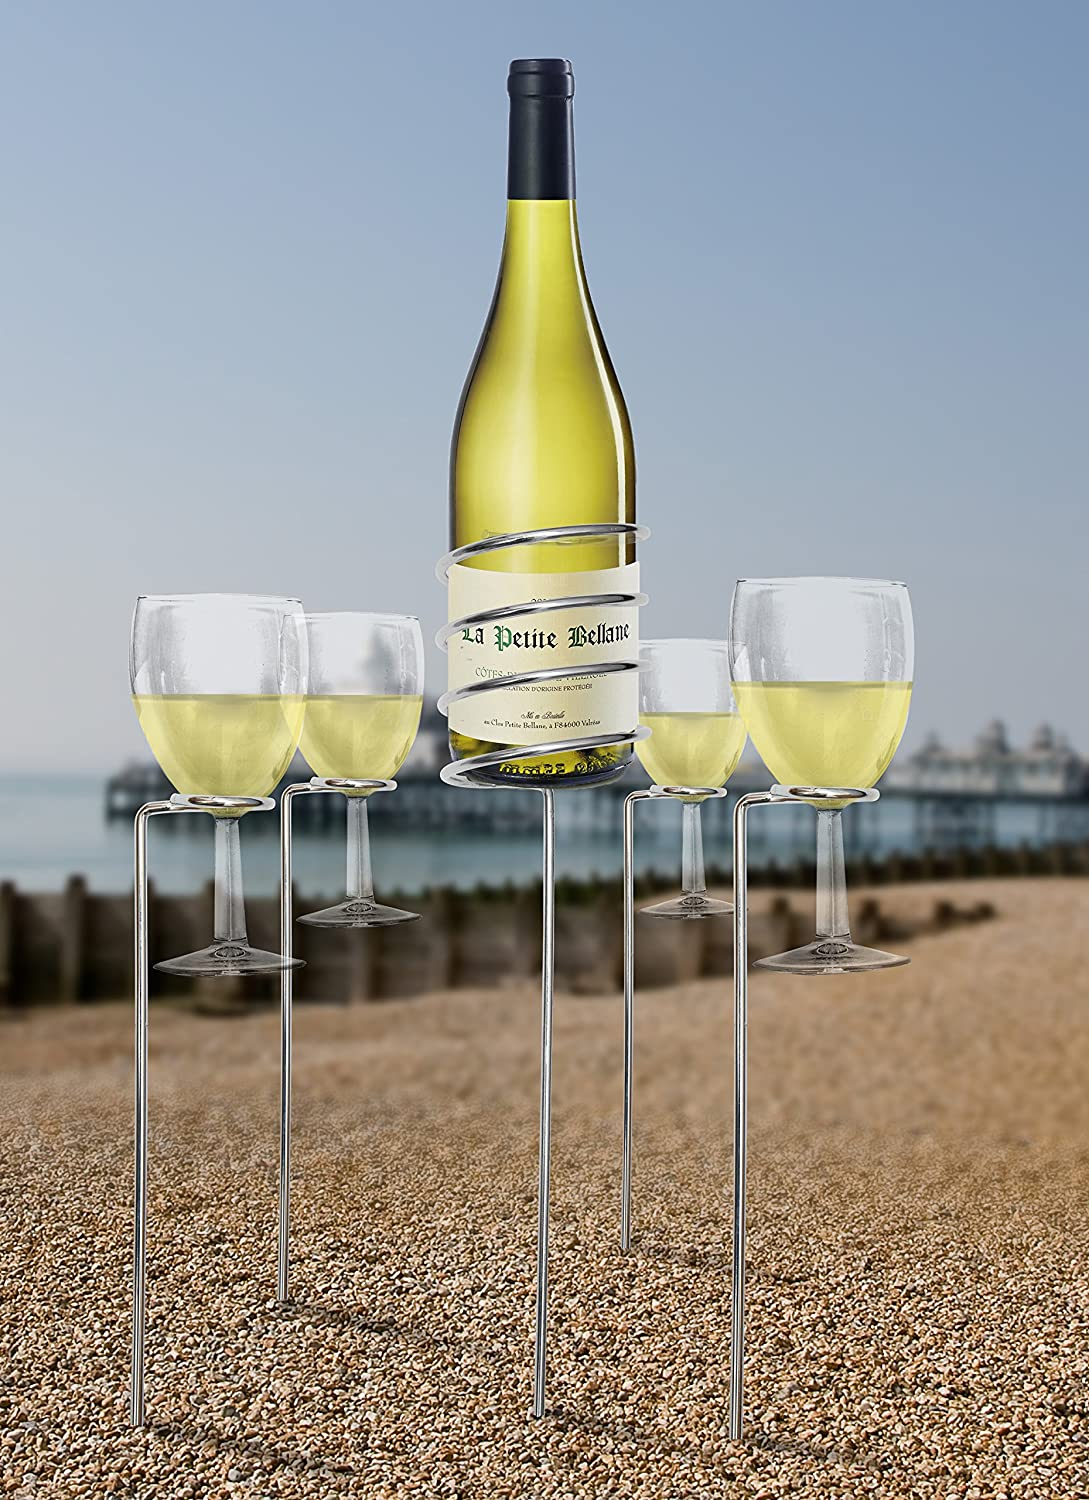 Camping and Picnics Adjustable 4 Wine Glass Holders and 1 Wine Bottle Holder for Garden Parties Wine Bottle and Glass Holder Set